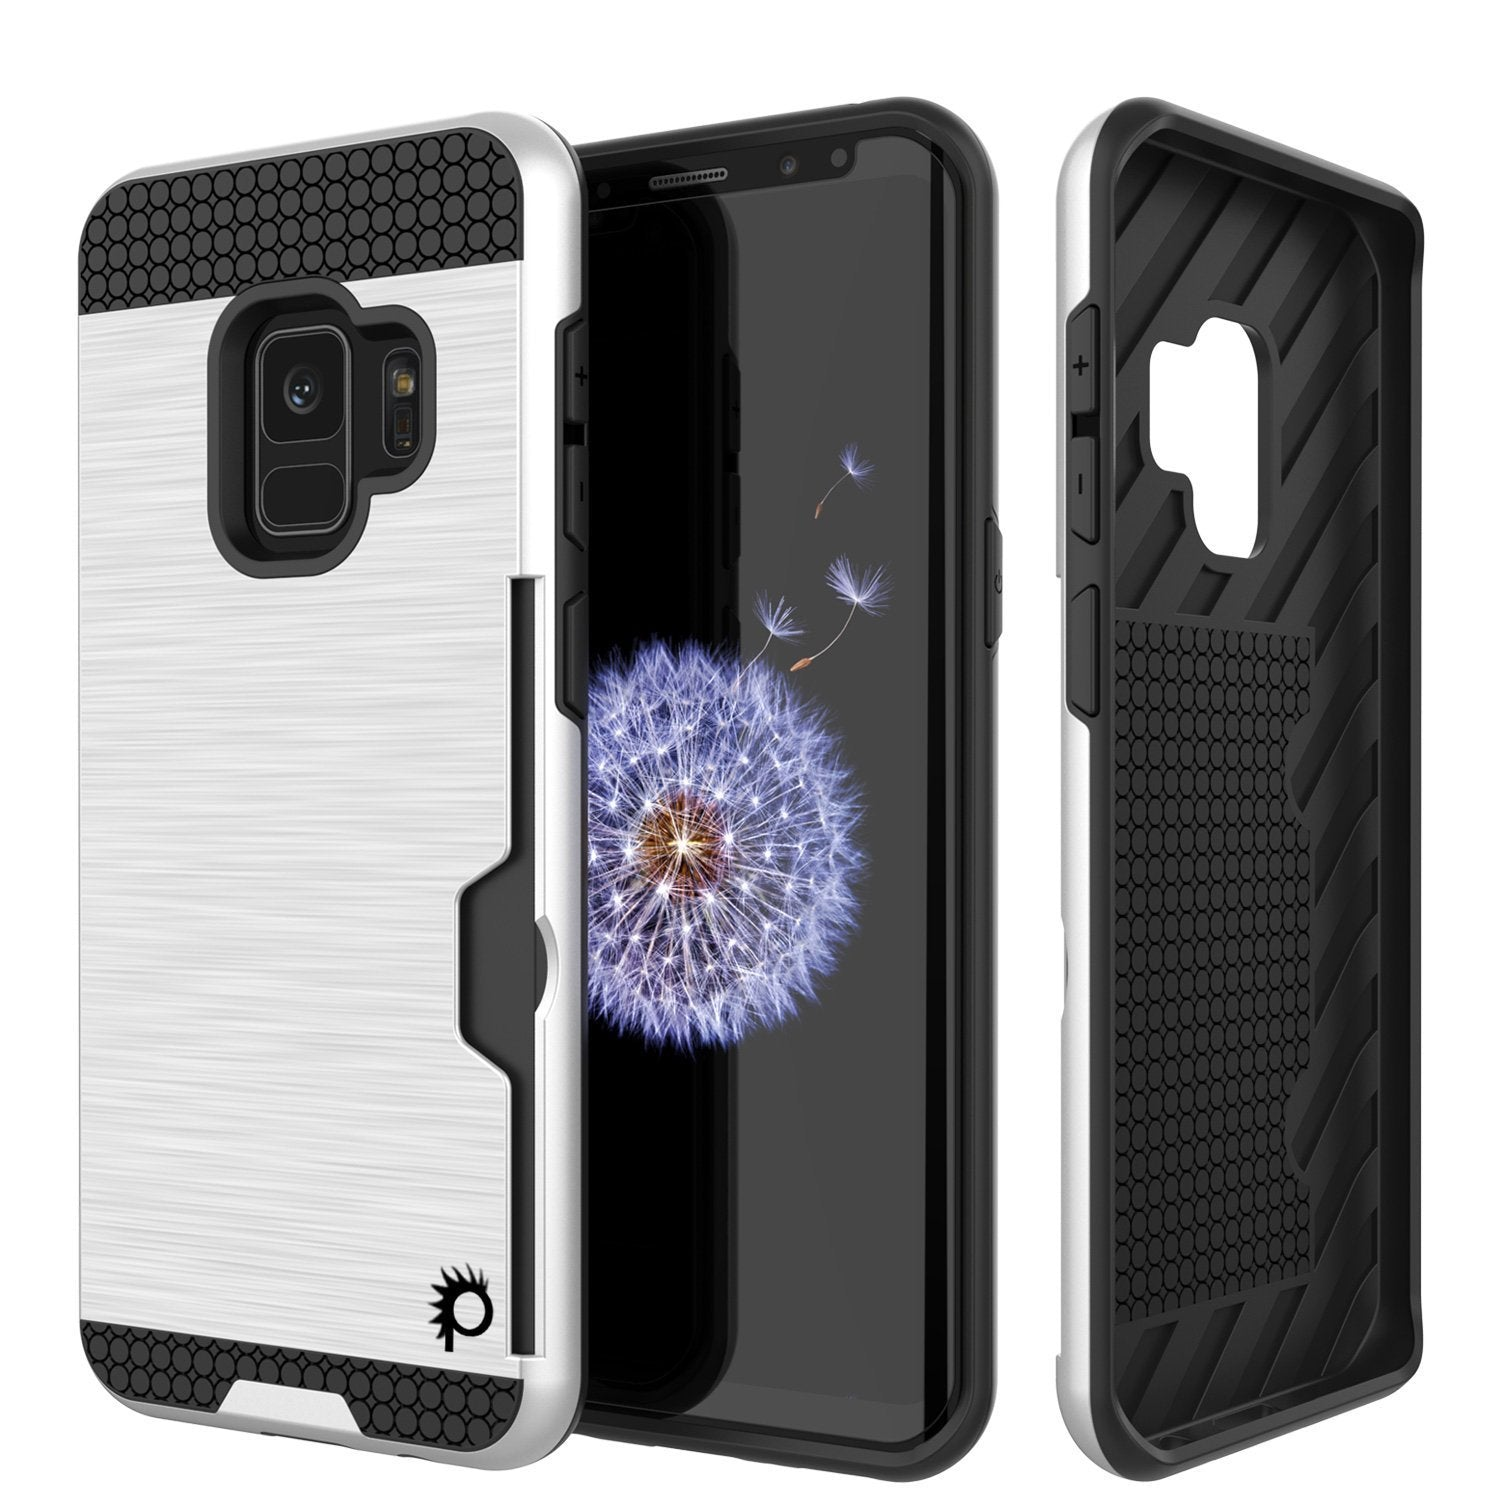 Galaxy S9 Dual-Layer, Anti-Shock, SLOT Series Slim-Fit Case [White]